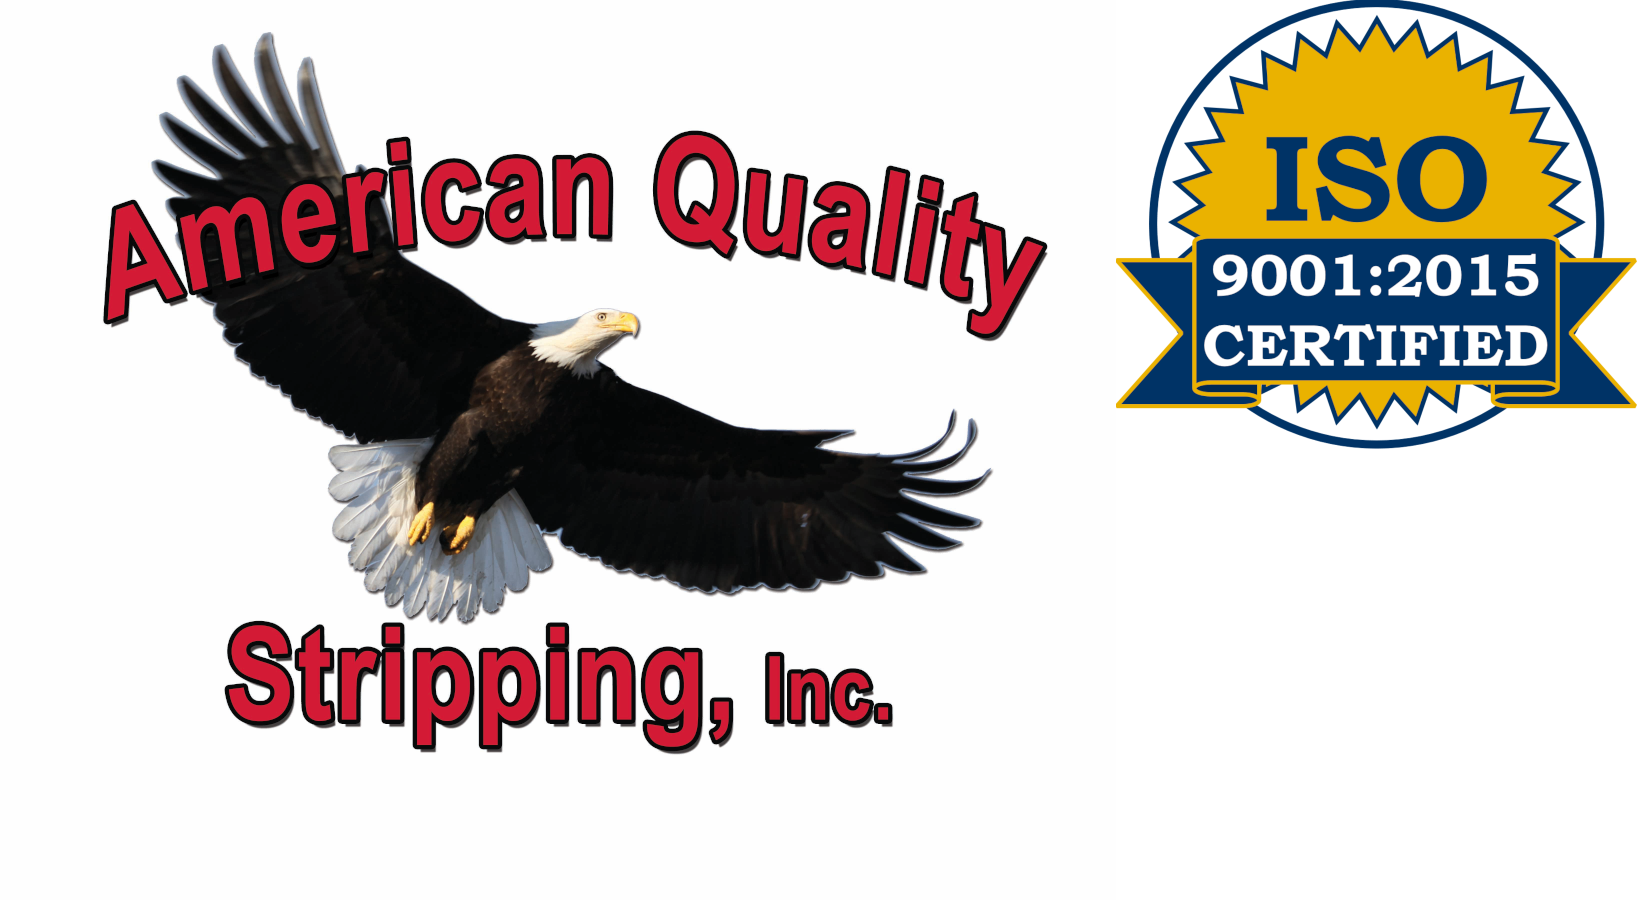 americanqualitystripping.com-Logo_with_ISO-9001-2015-Certified-Stamp